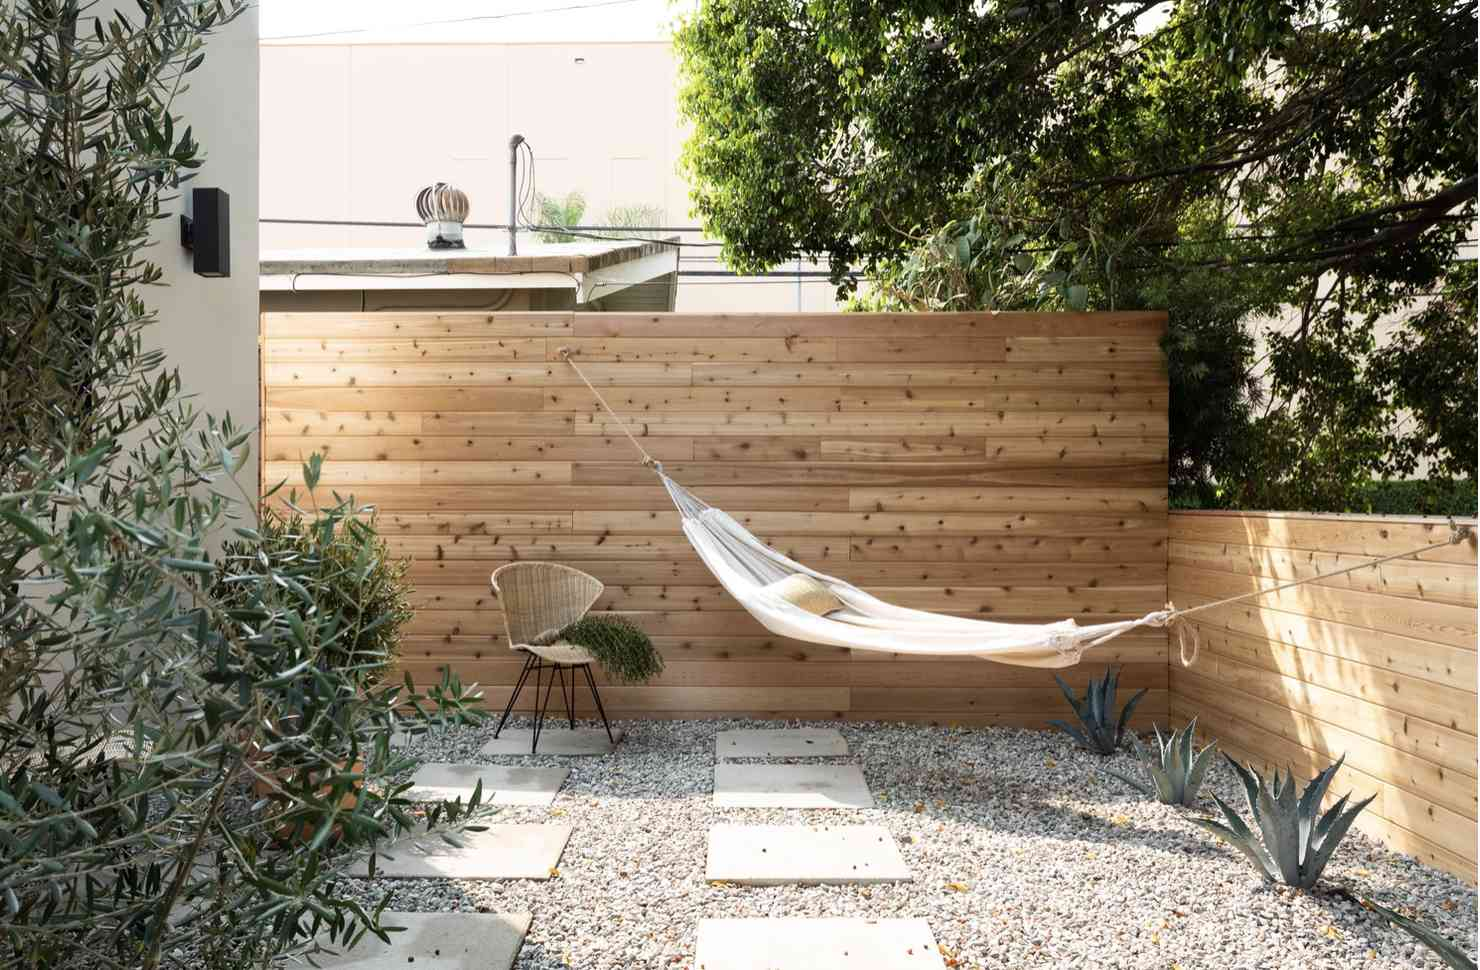 fenced in backyard enclave with hammock